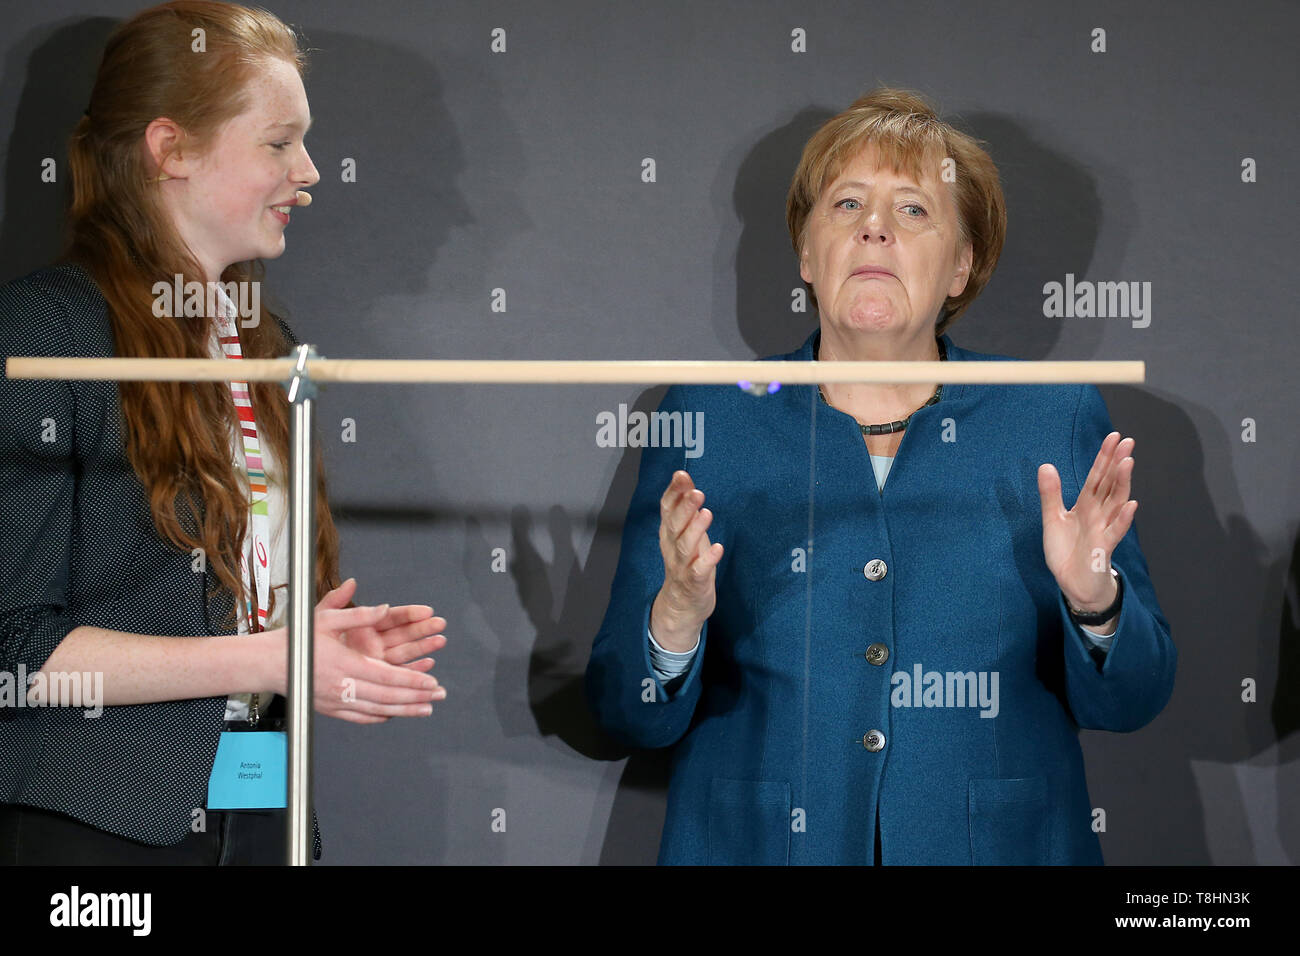 Wuppertal, Germany. 13th May, 2019. Federal Chancellor Angela Merkel (r, CDU) is pursuing a pendulum experiment at the Junior University alongside student Antonia Westphal. The Wuppertal Junior University is a nationwide unique extracurricular educational and research institution for 4 to 20 year olds. Credit: Oliver Berg/dpa/Alamy Live News - Stock Image